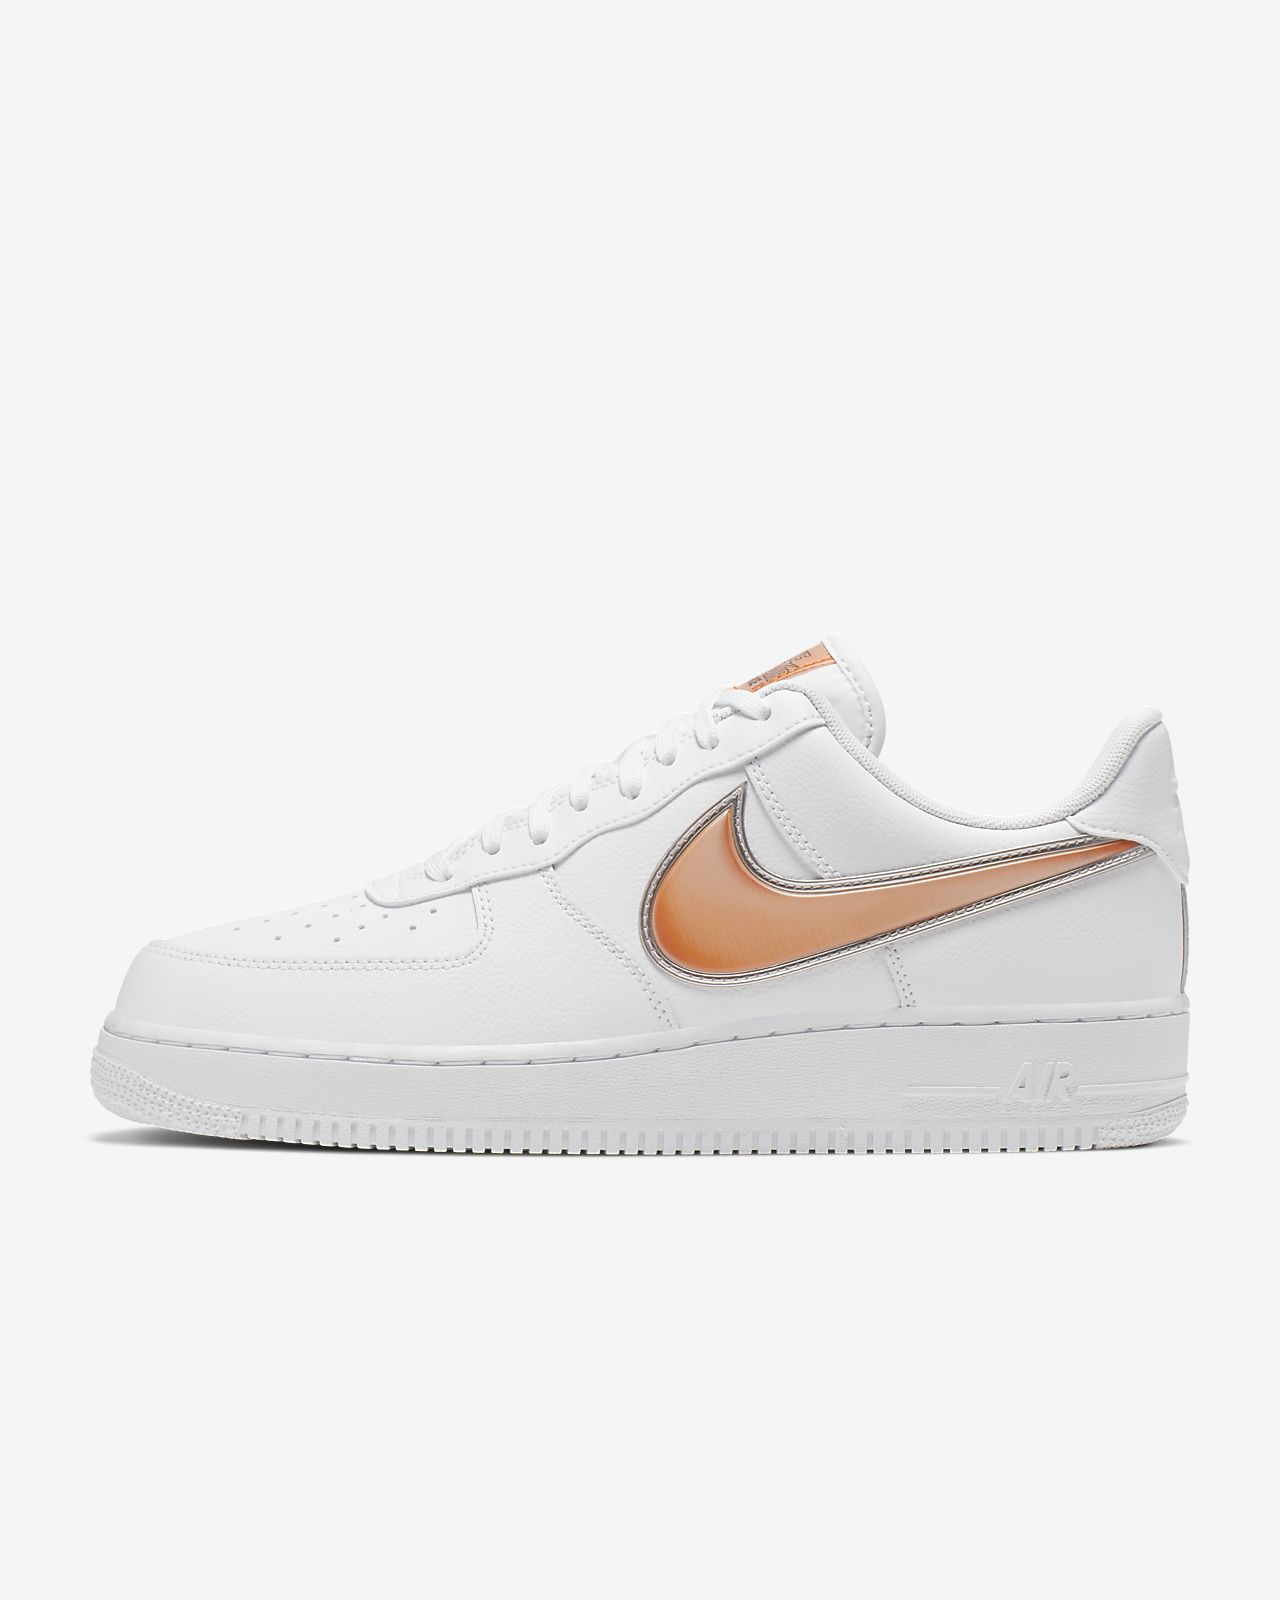 newest 6f0df 292c2 ... Nike Air Force 1  07 LV8 3 Men s Shoe